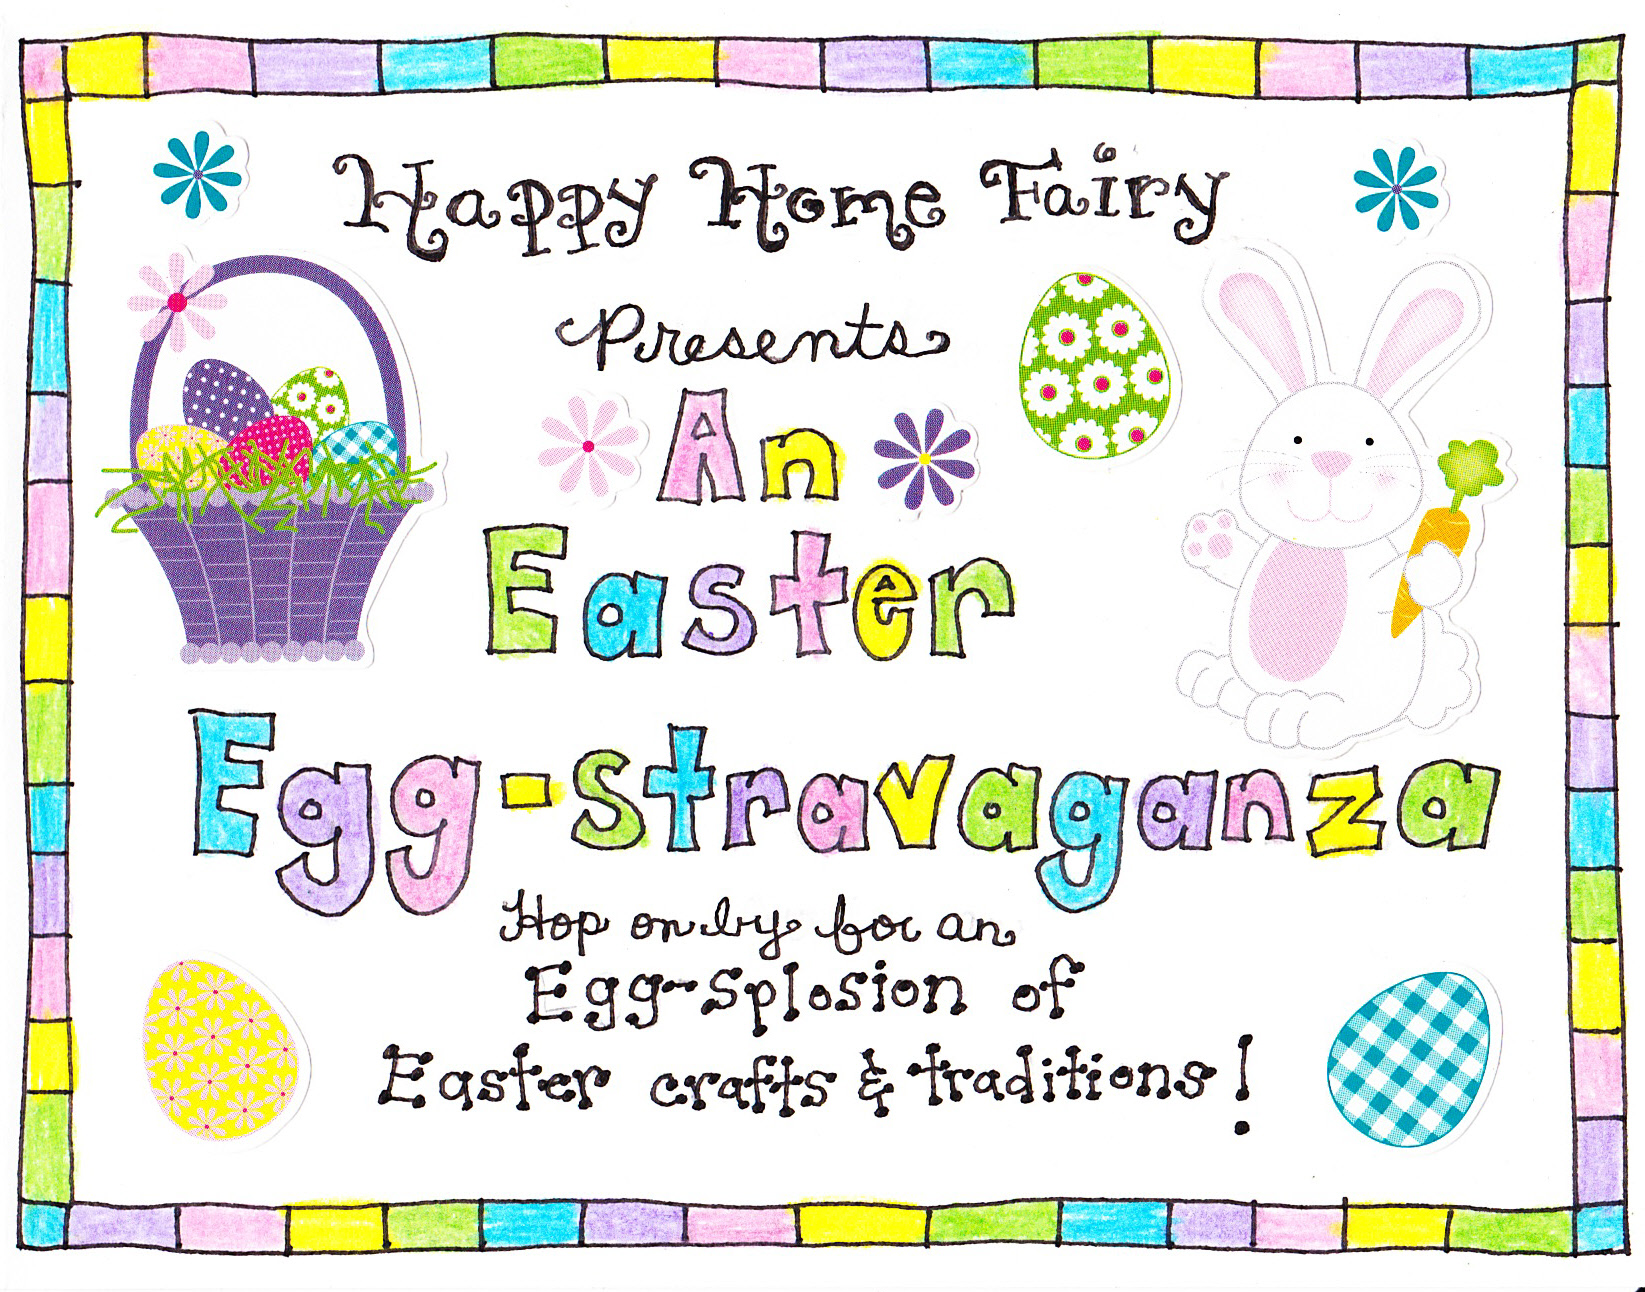 Easter morning scavenger hunt free printable happy home fairy negle Images